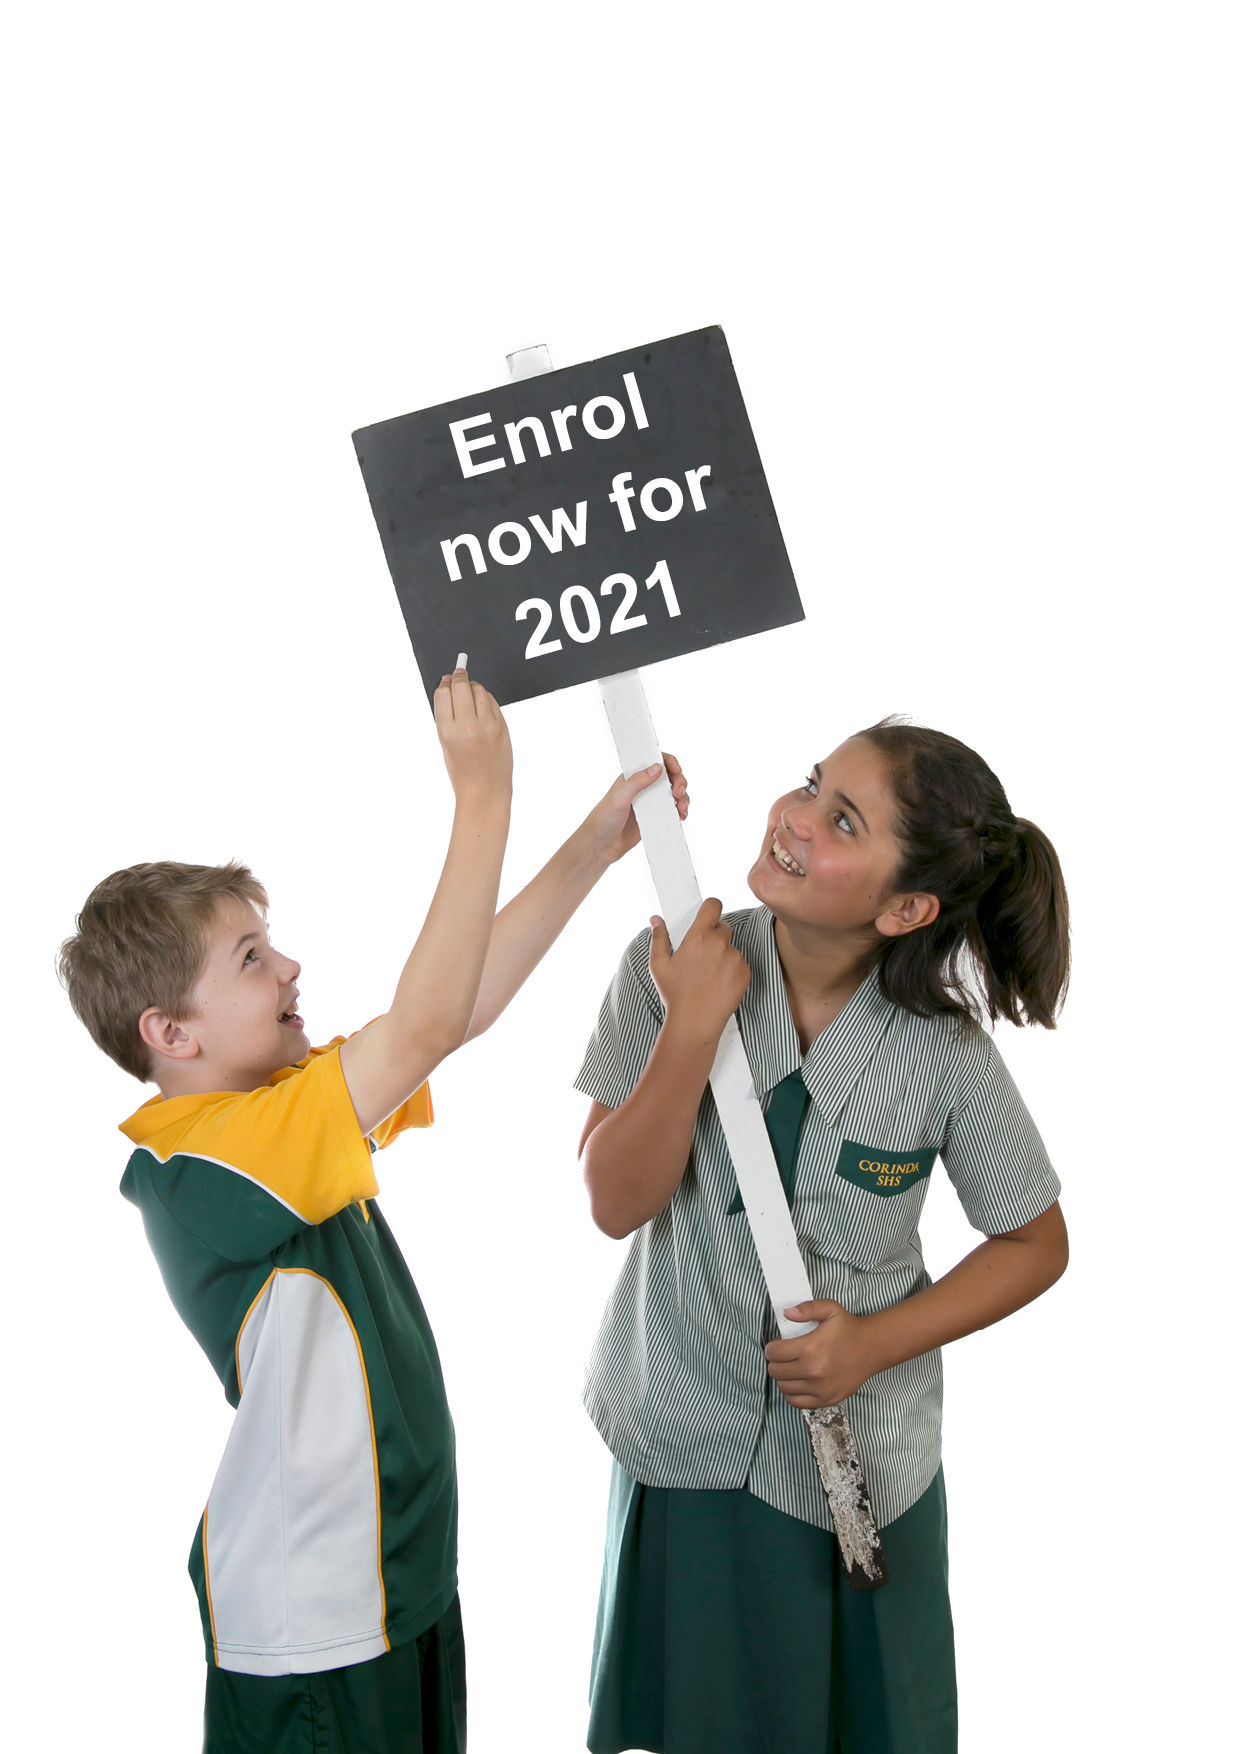 Enrol now for 2021.jpg